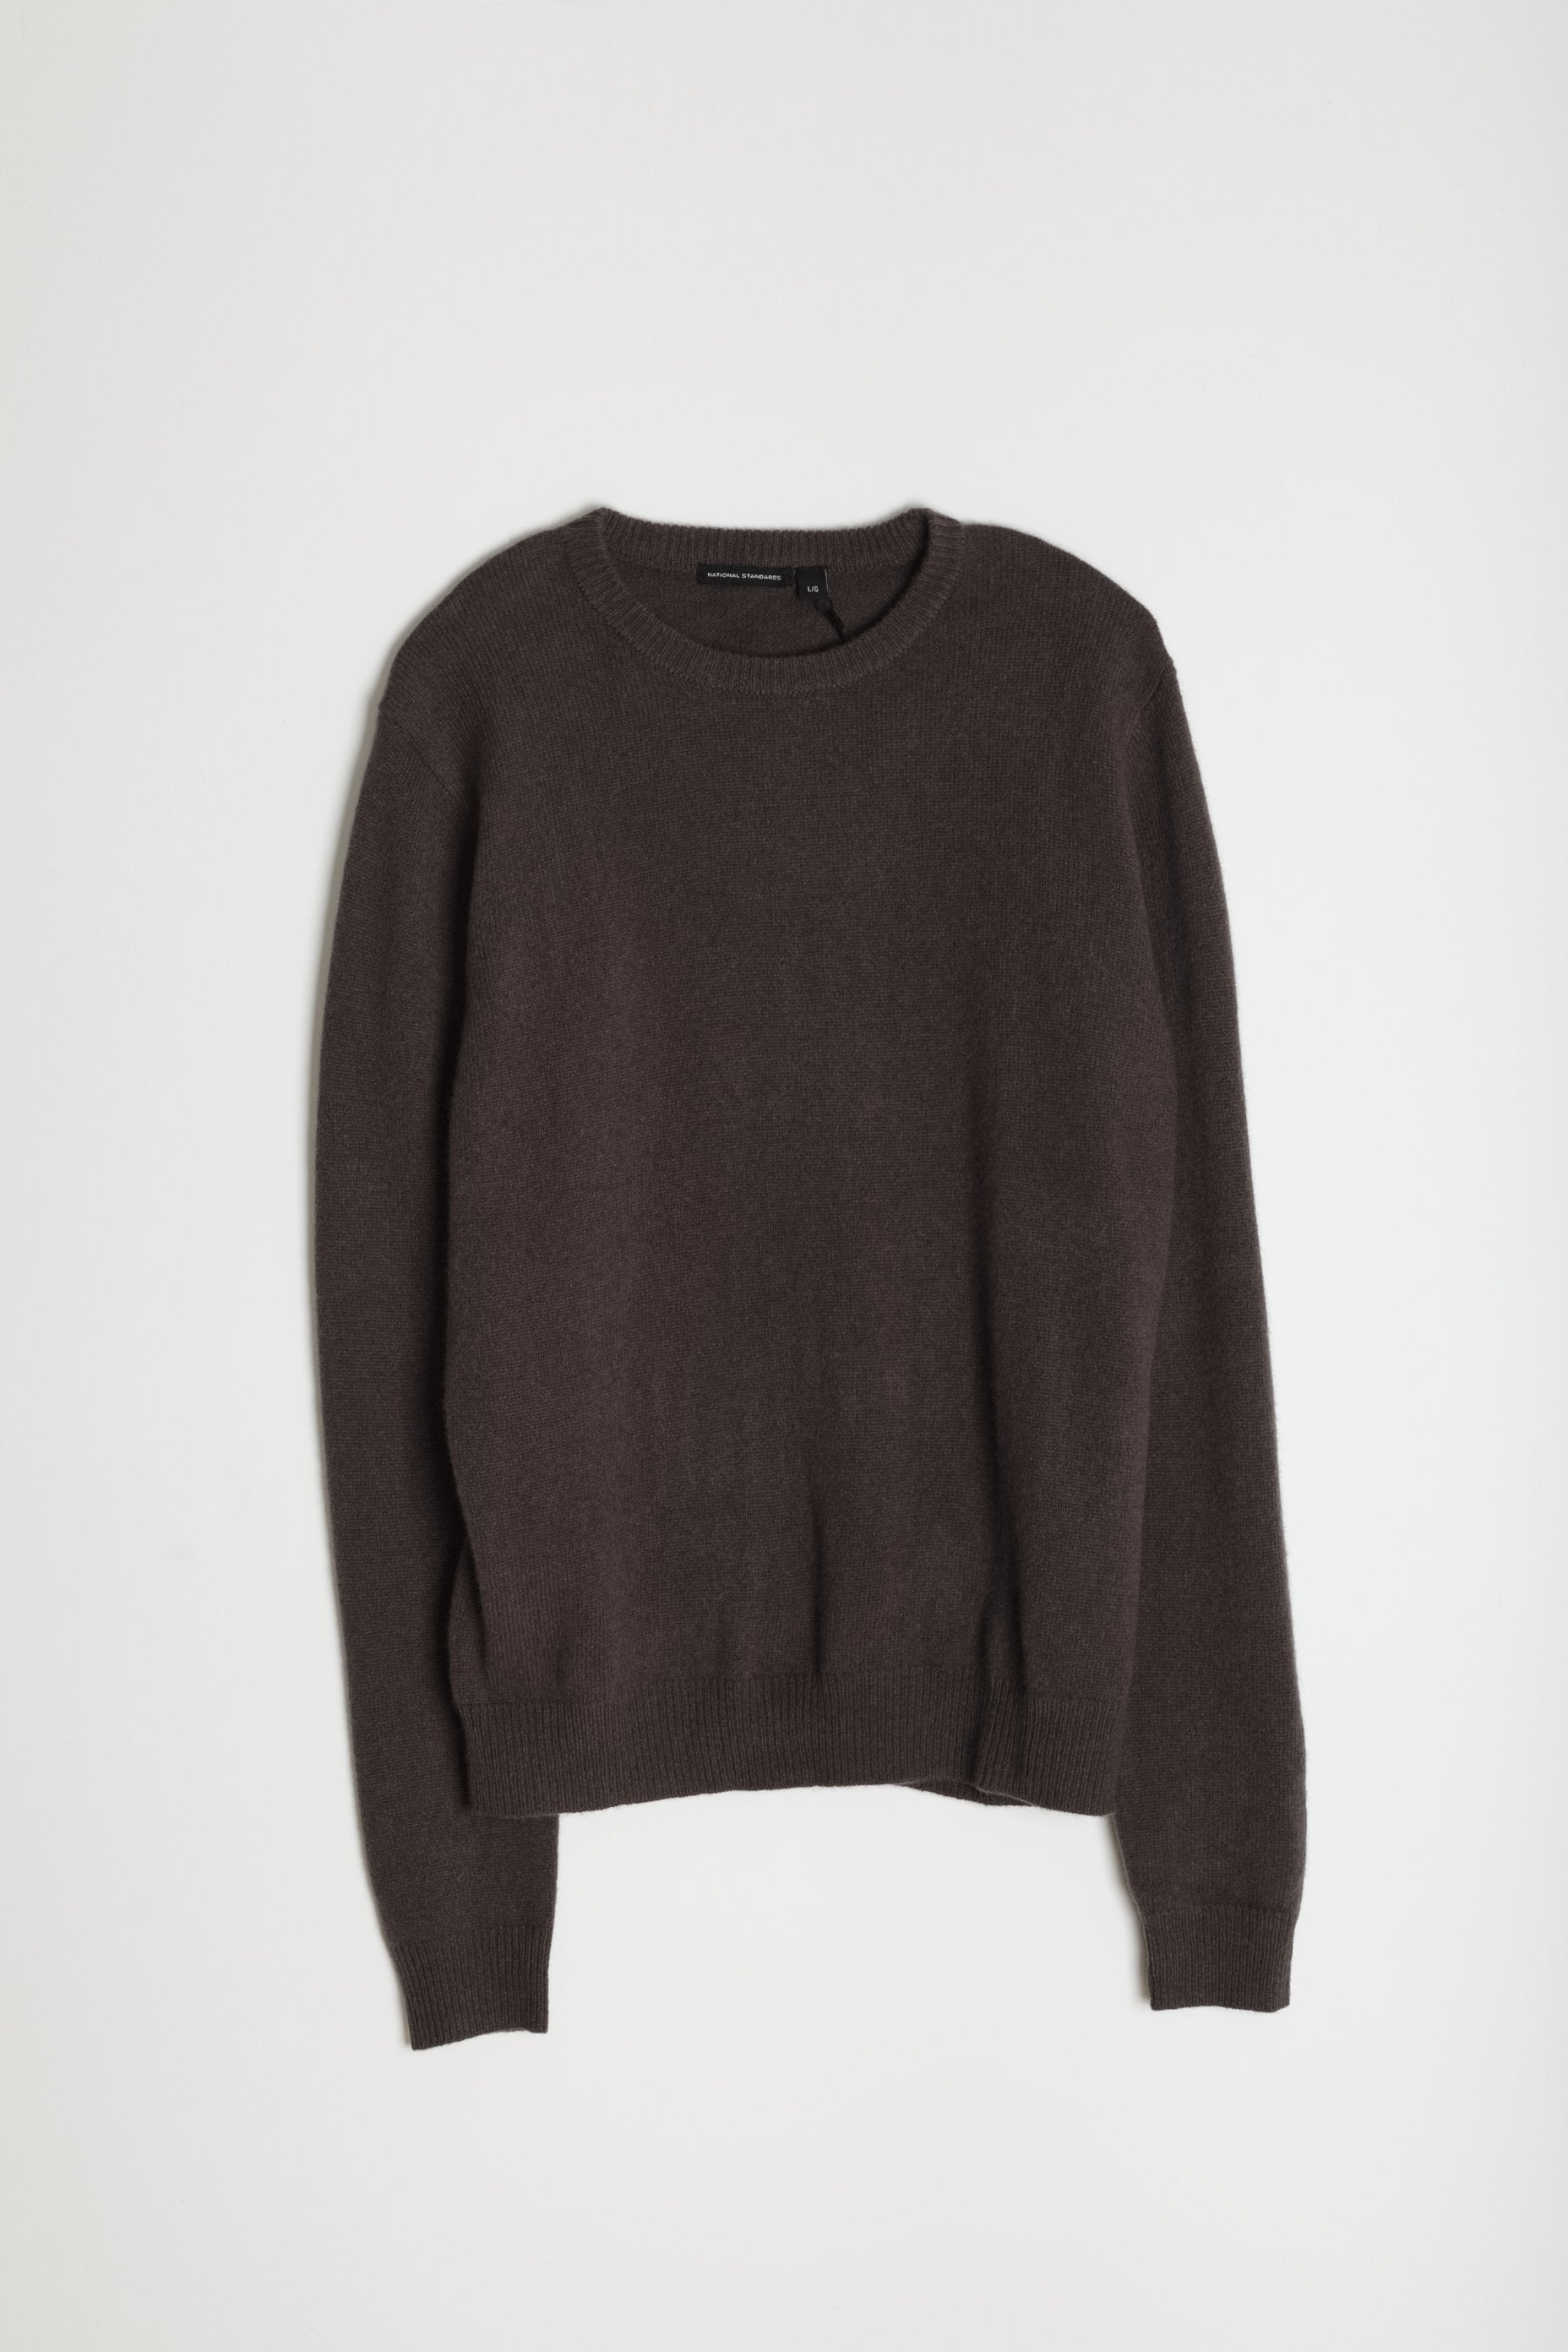 New Wool Crew Neck in Taupe 06